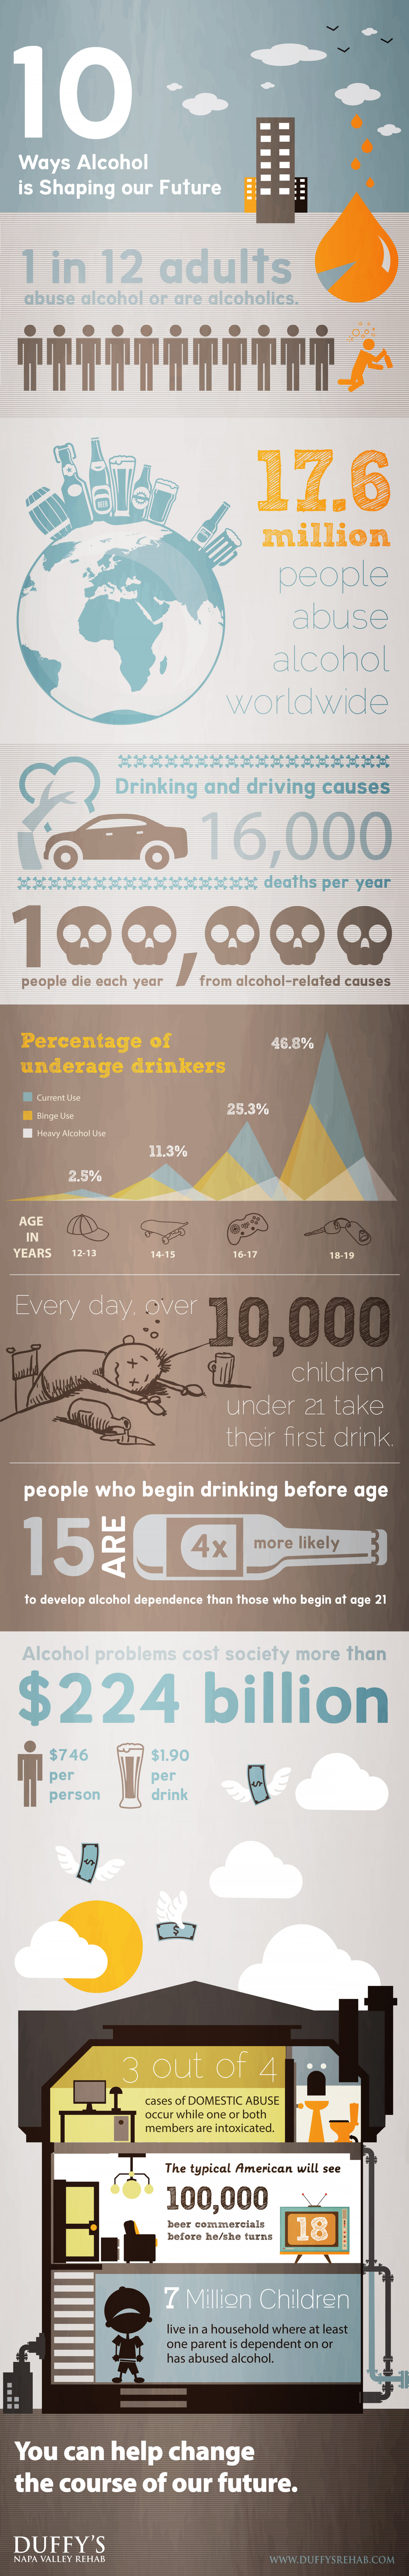 10 Ways Alcohol is Shaping our Future Infographic